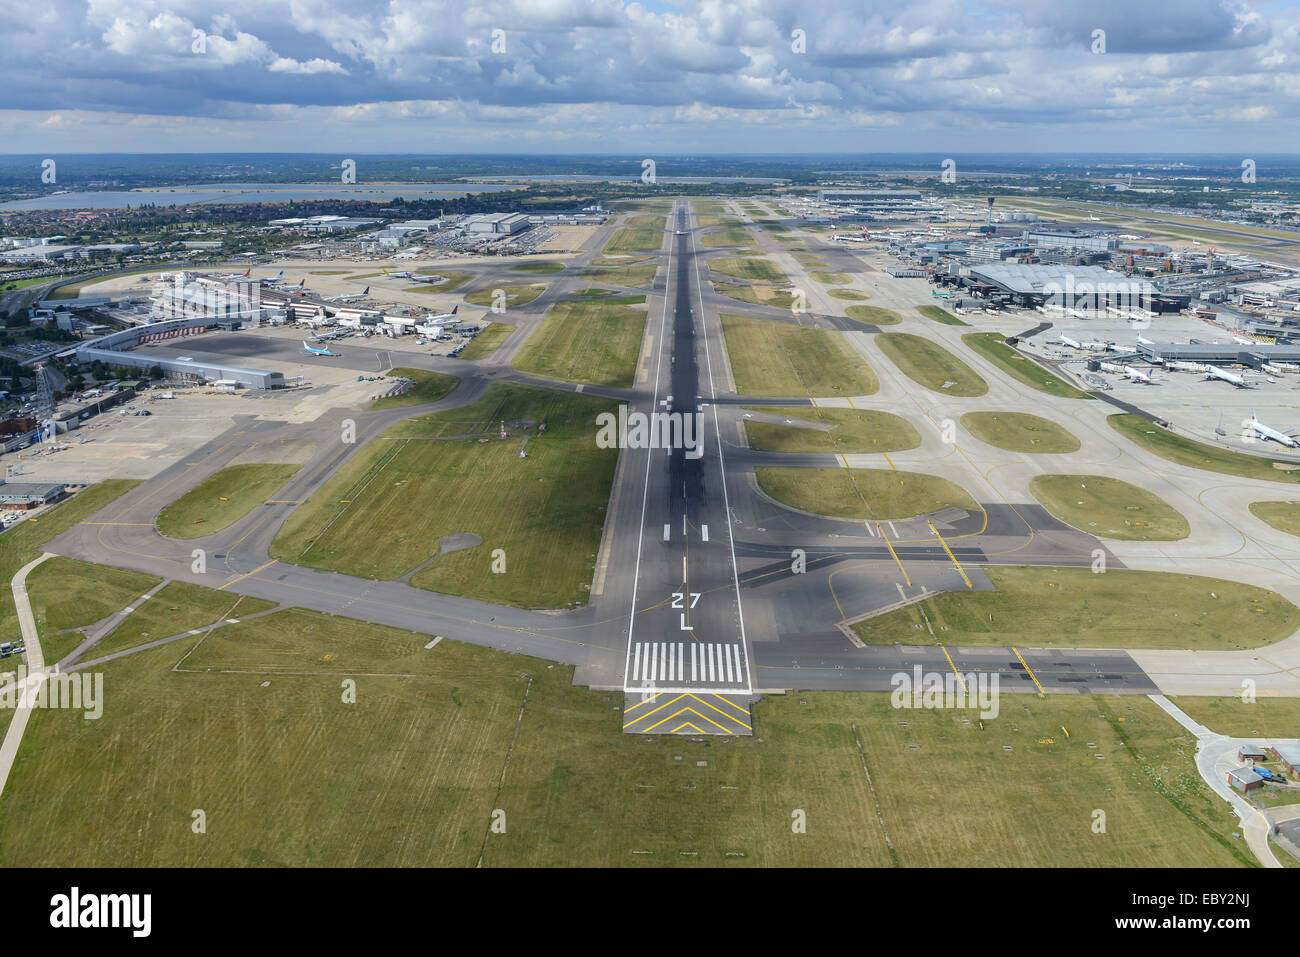 An aerial view looking West down runway 27L at Heathrow Airport, London - Stock Image